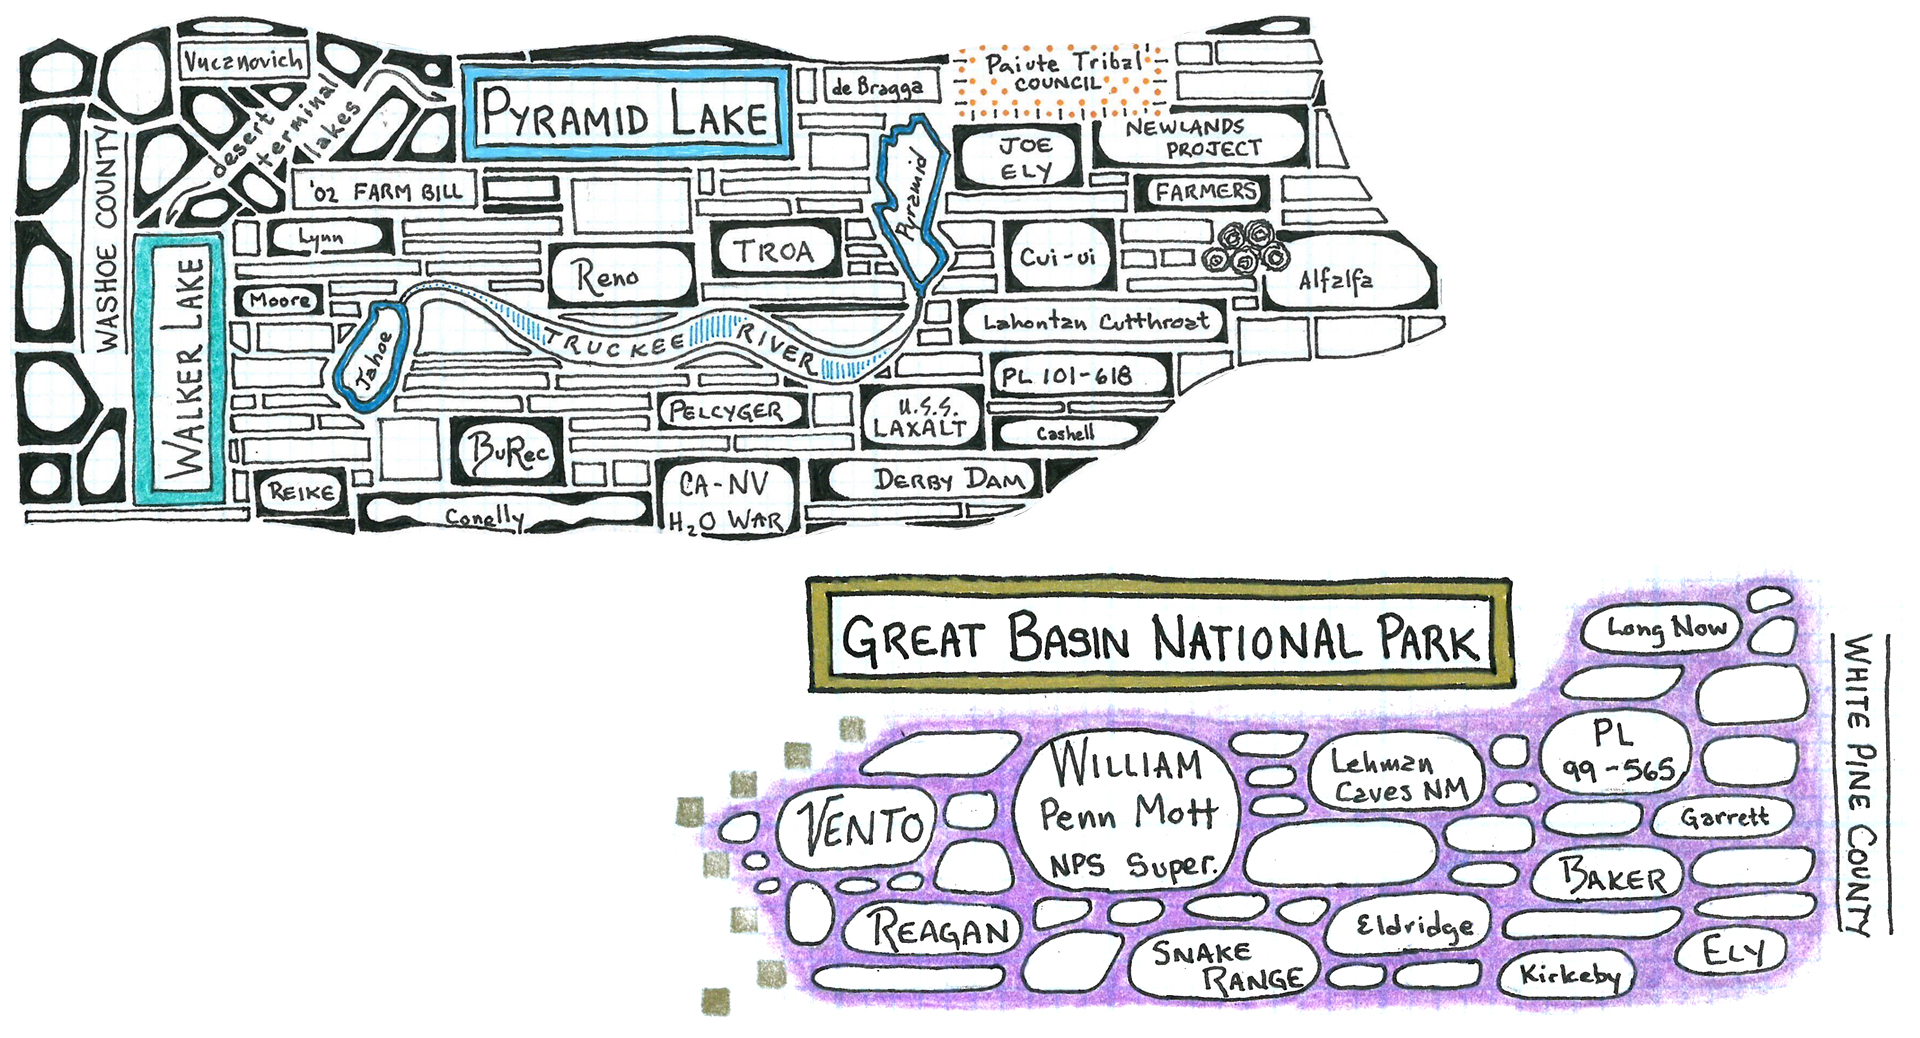 """The """"Great Basin National Park"""" and """"Pyramid Lake"""" panels represent historical events on Sen. Harry Reid's environmental power map. 